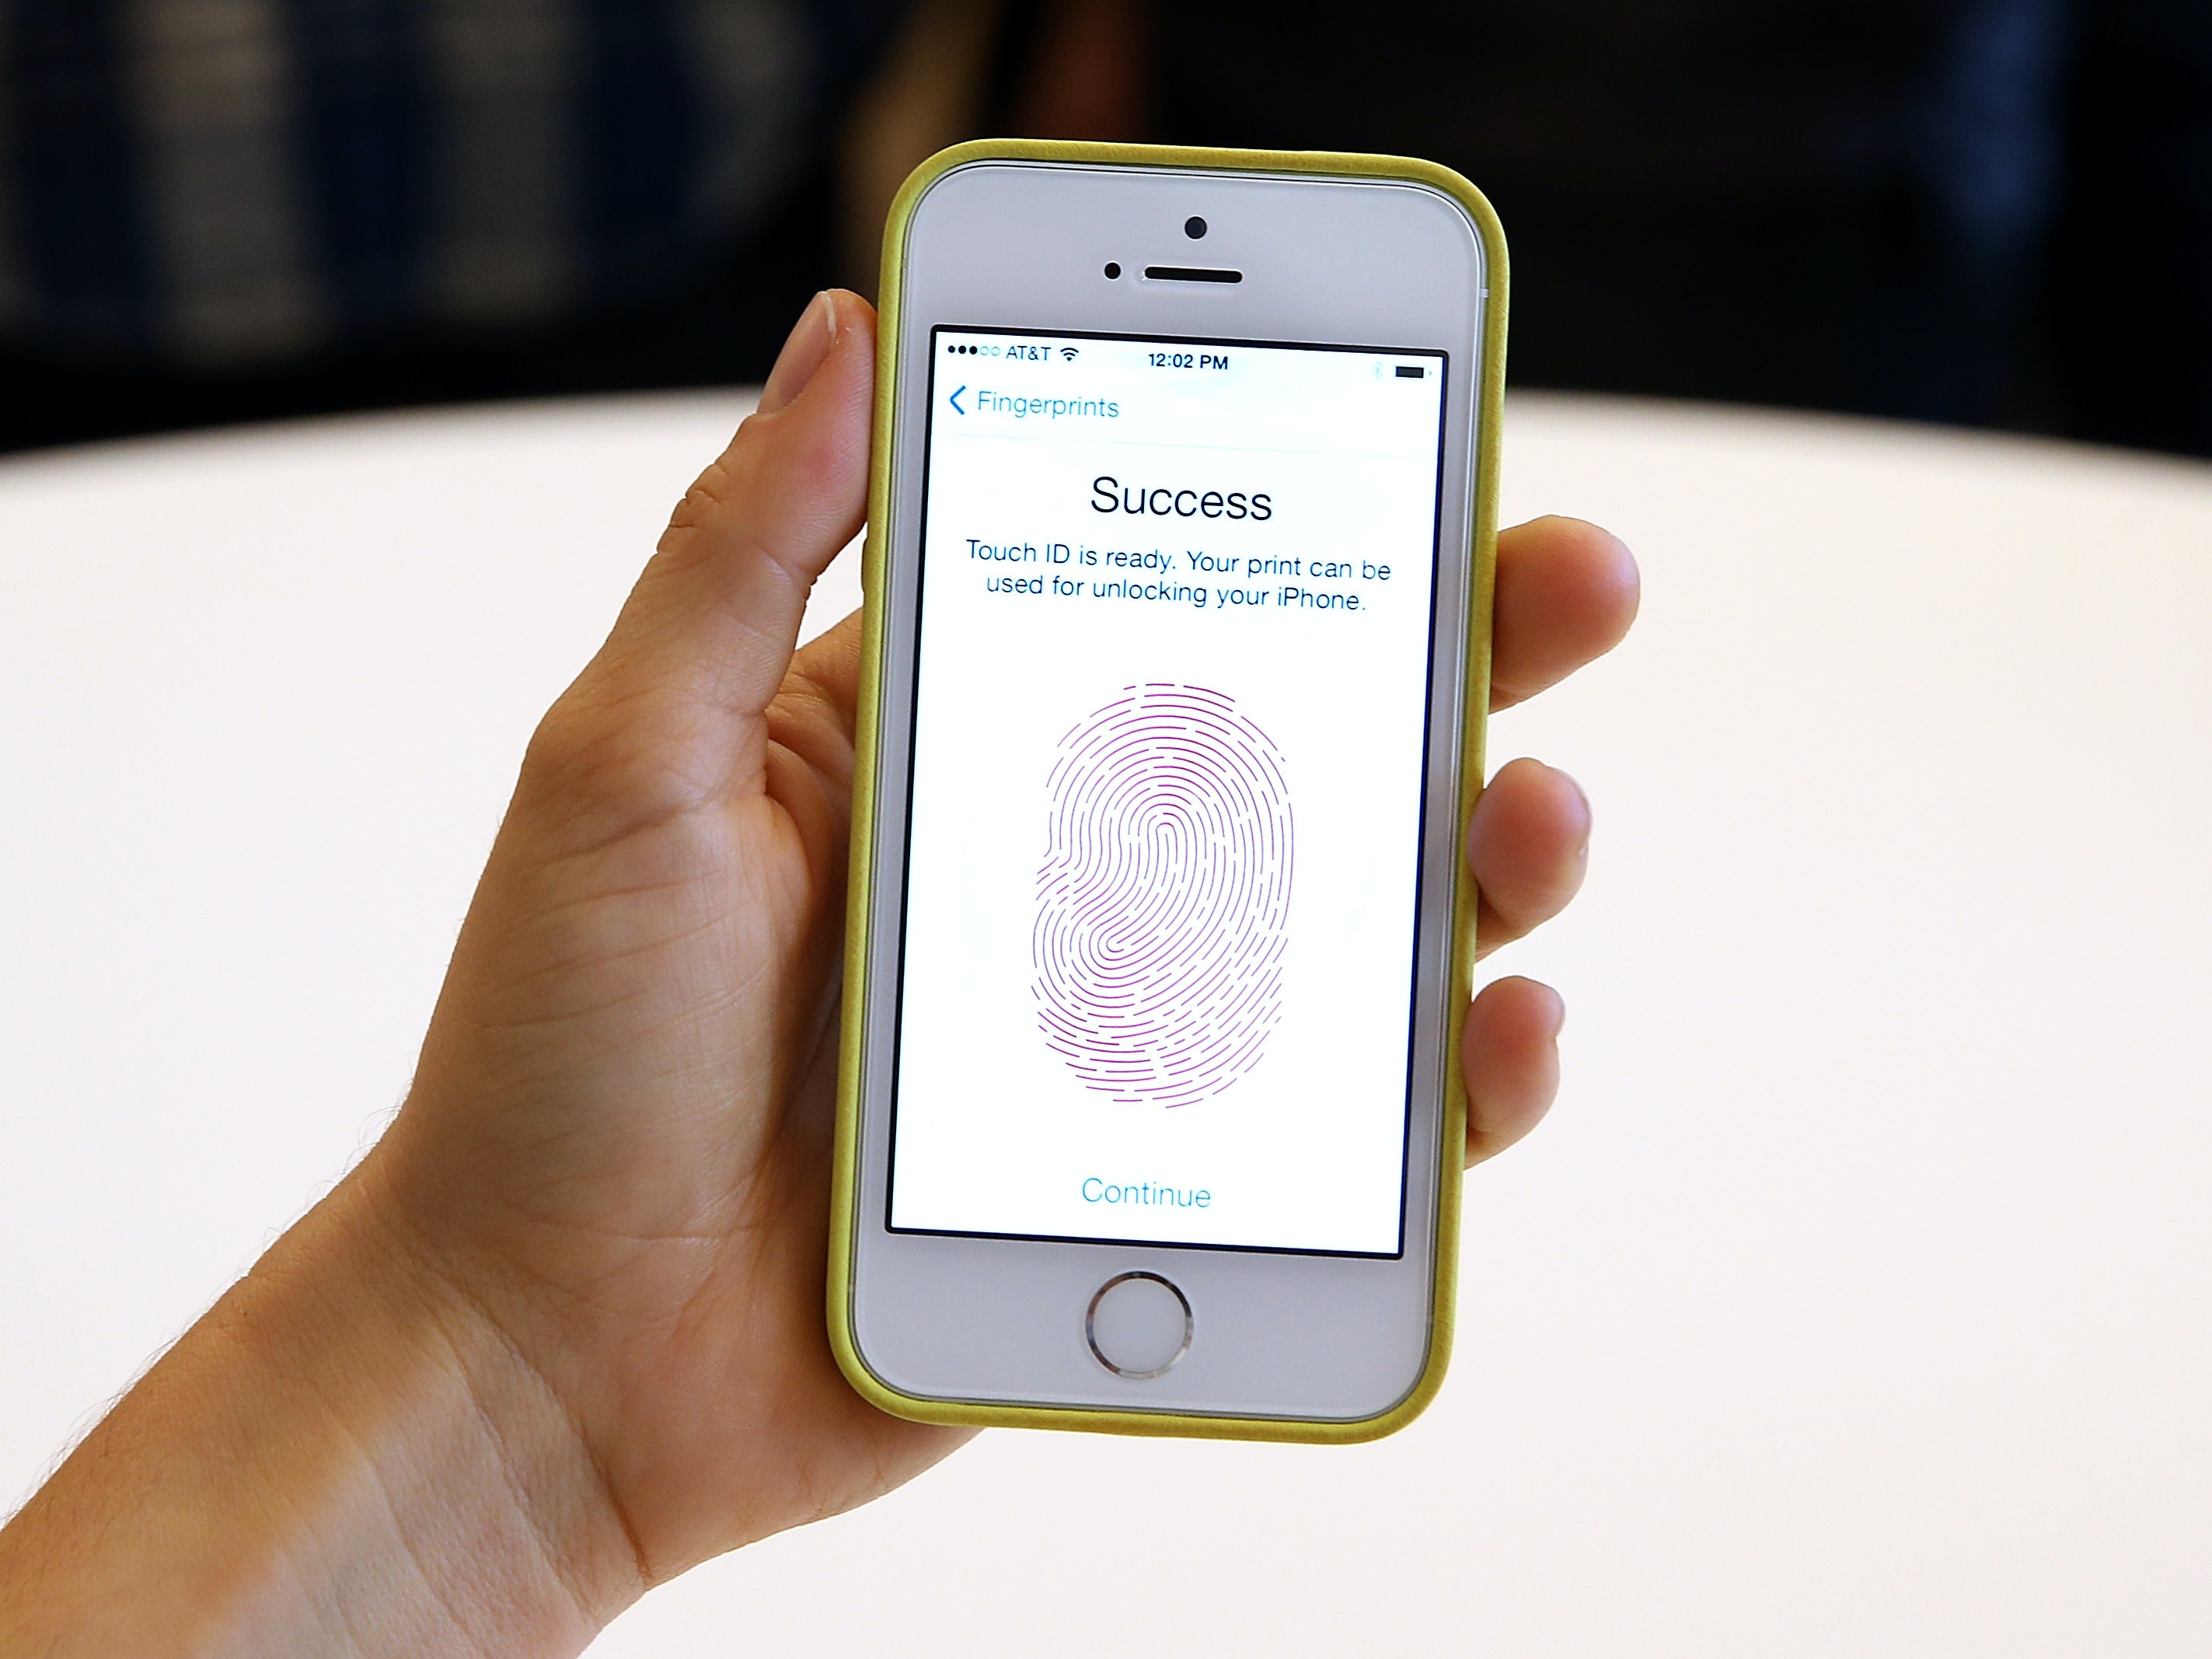 Hackers Can Now Print Your Fingerprint and Unlock Your Phone